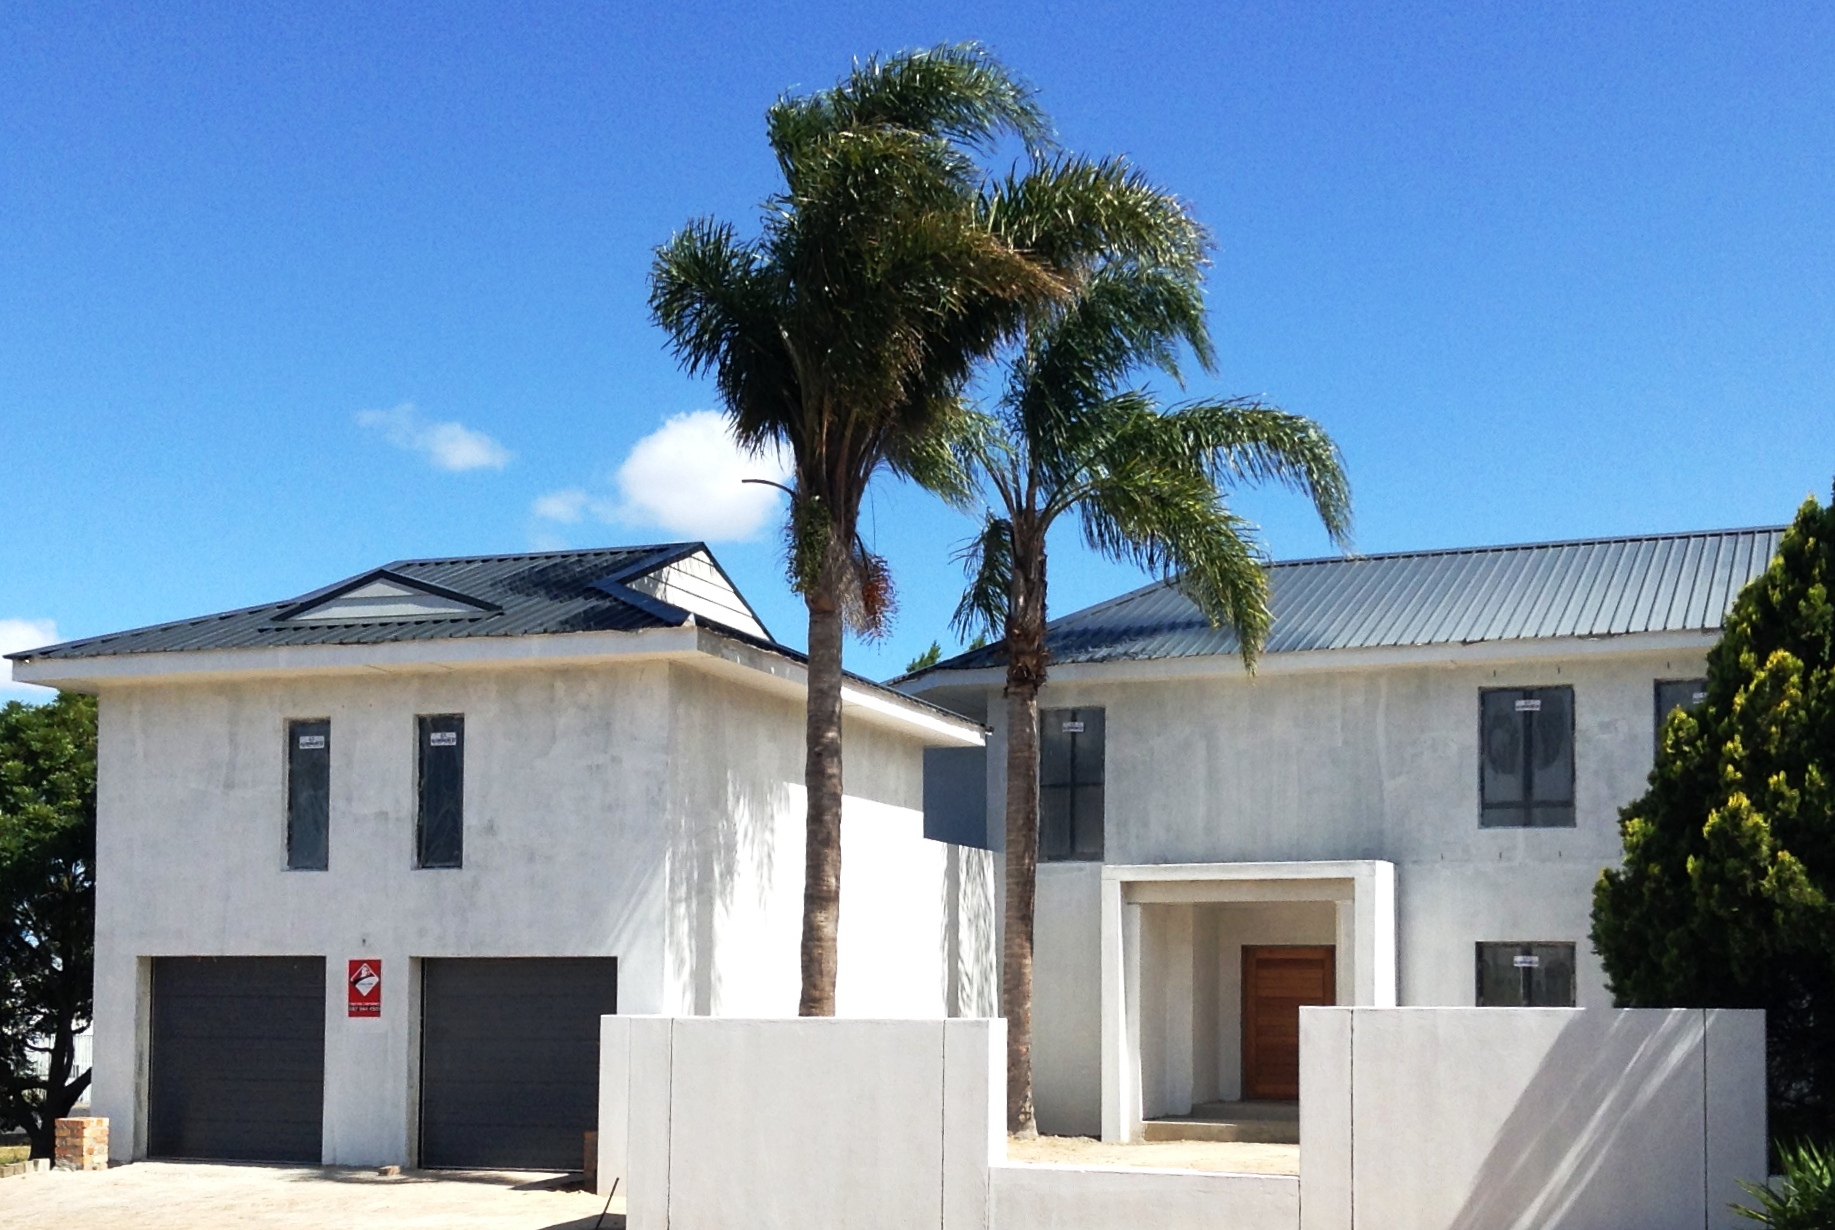 4 Bedroom House for sale in Paradyskloof ENT0017729 : photo#0